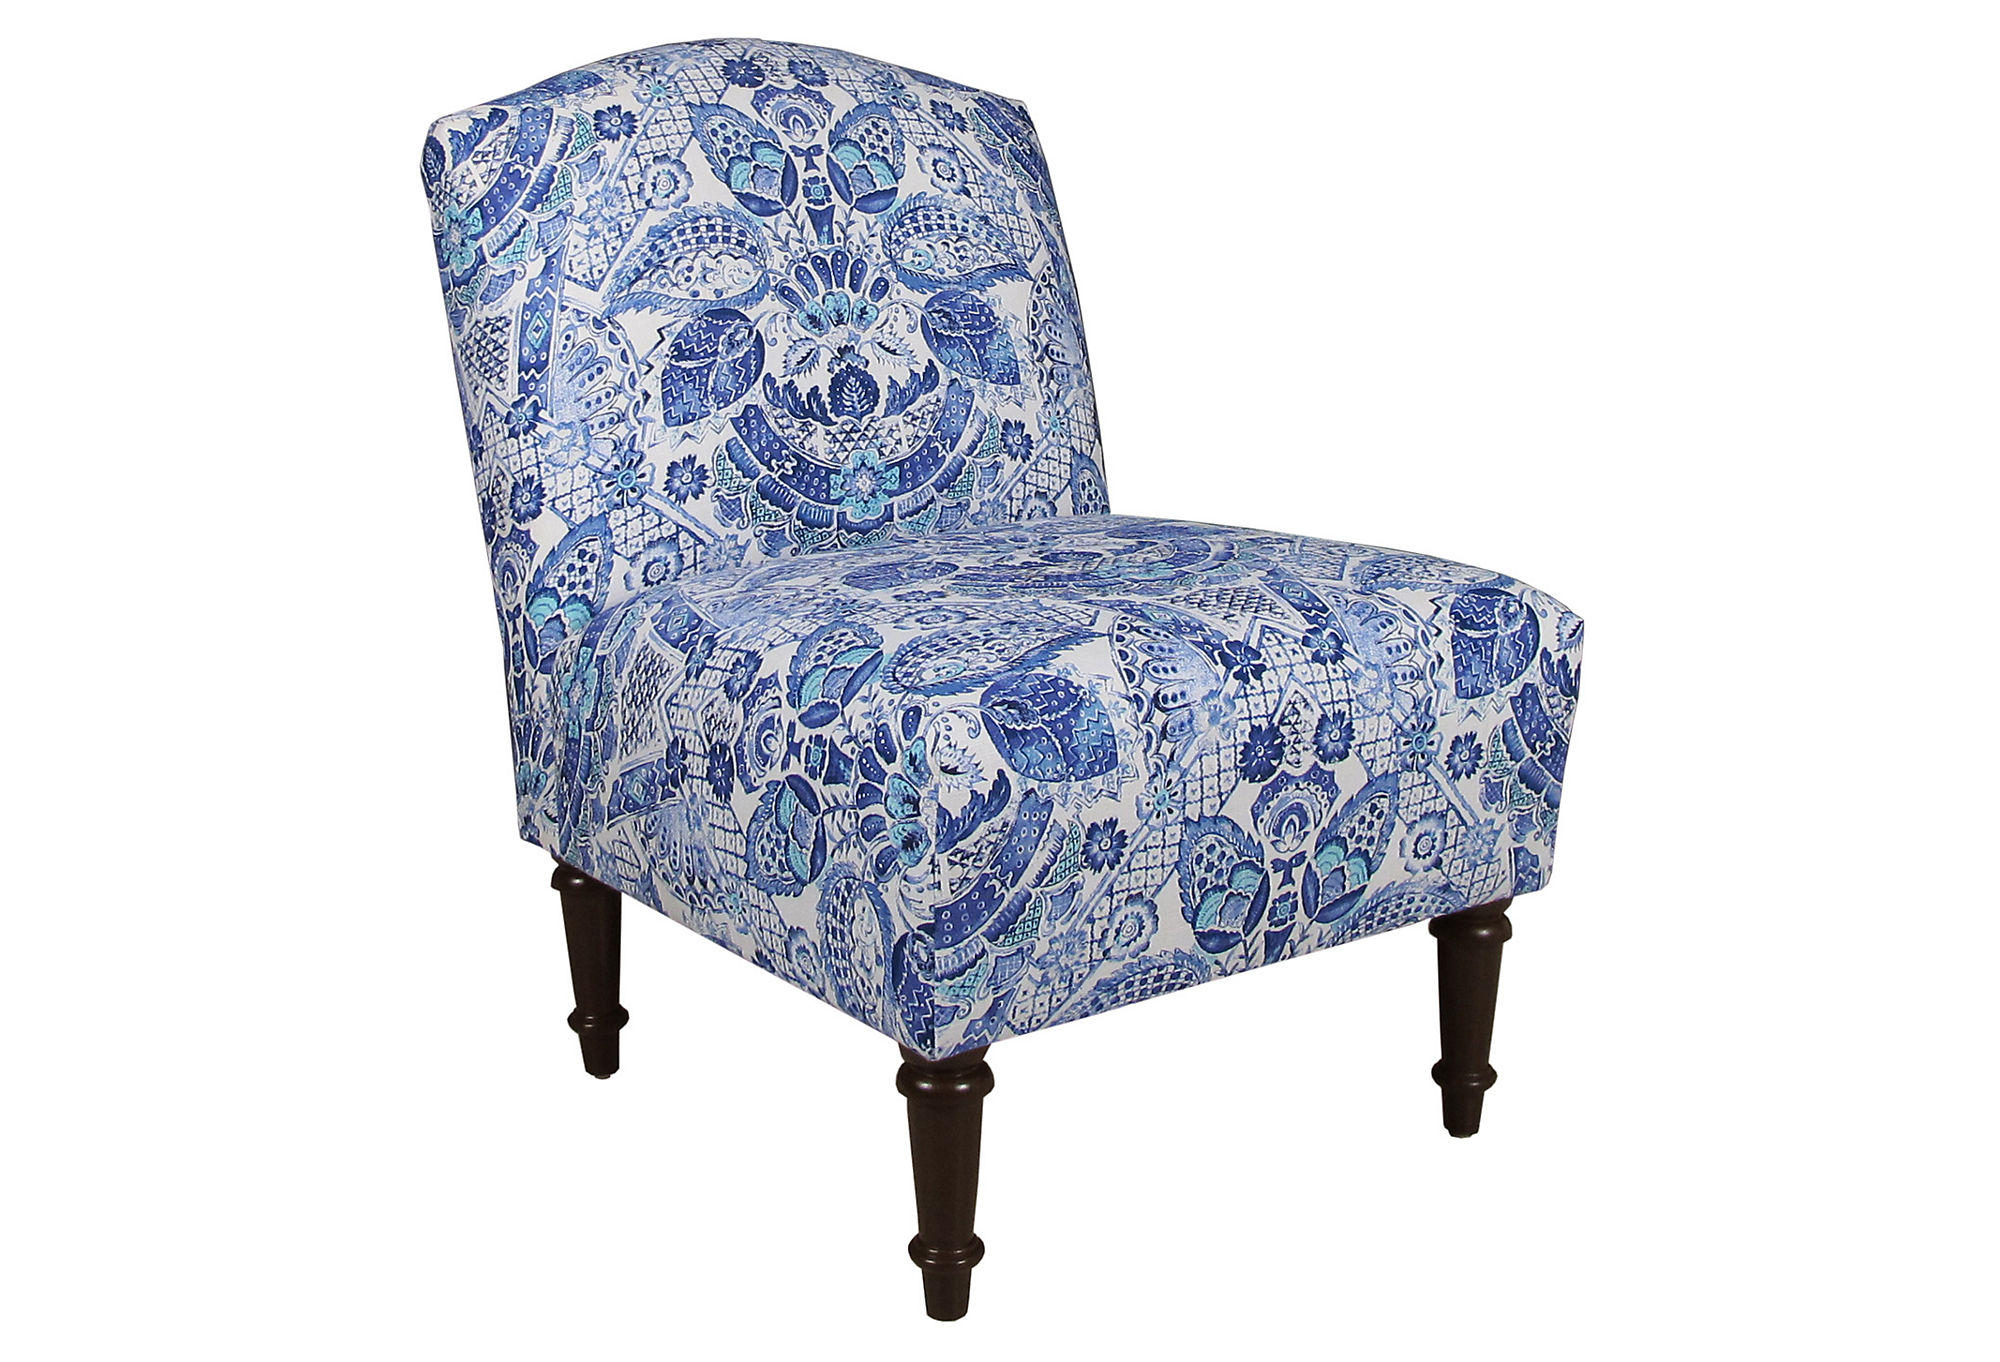 Blue Slipper Chair Clark Slipper Chair Blue Damask Accent From One Kings Lane